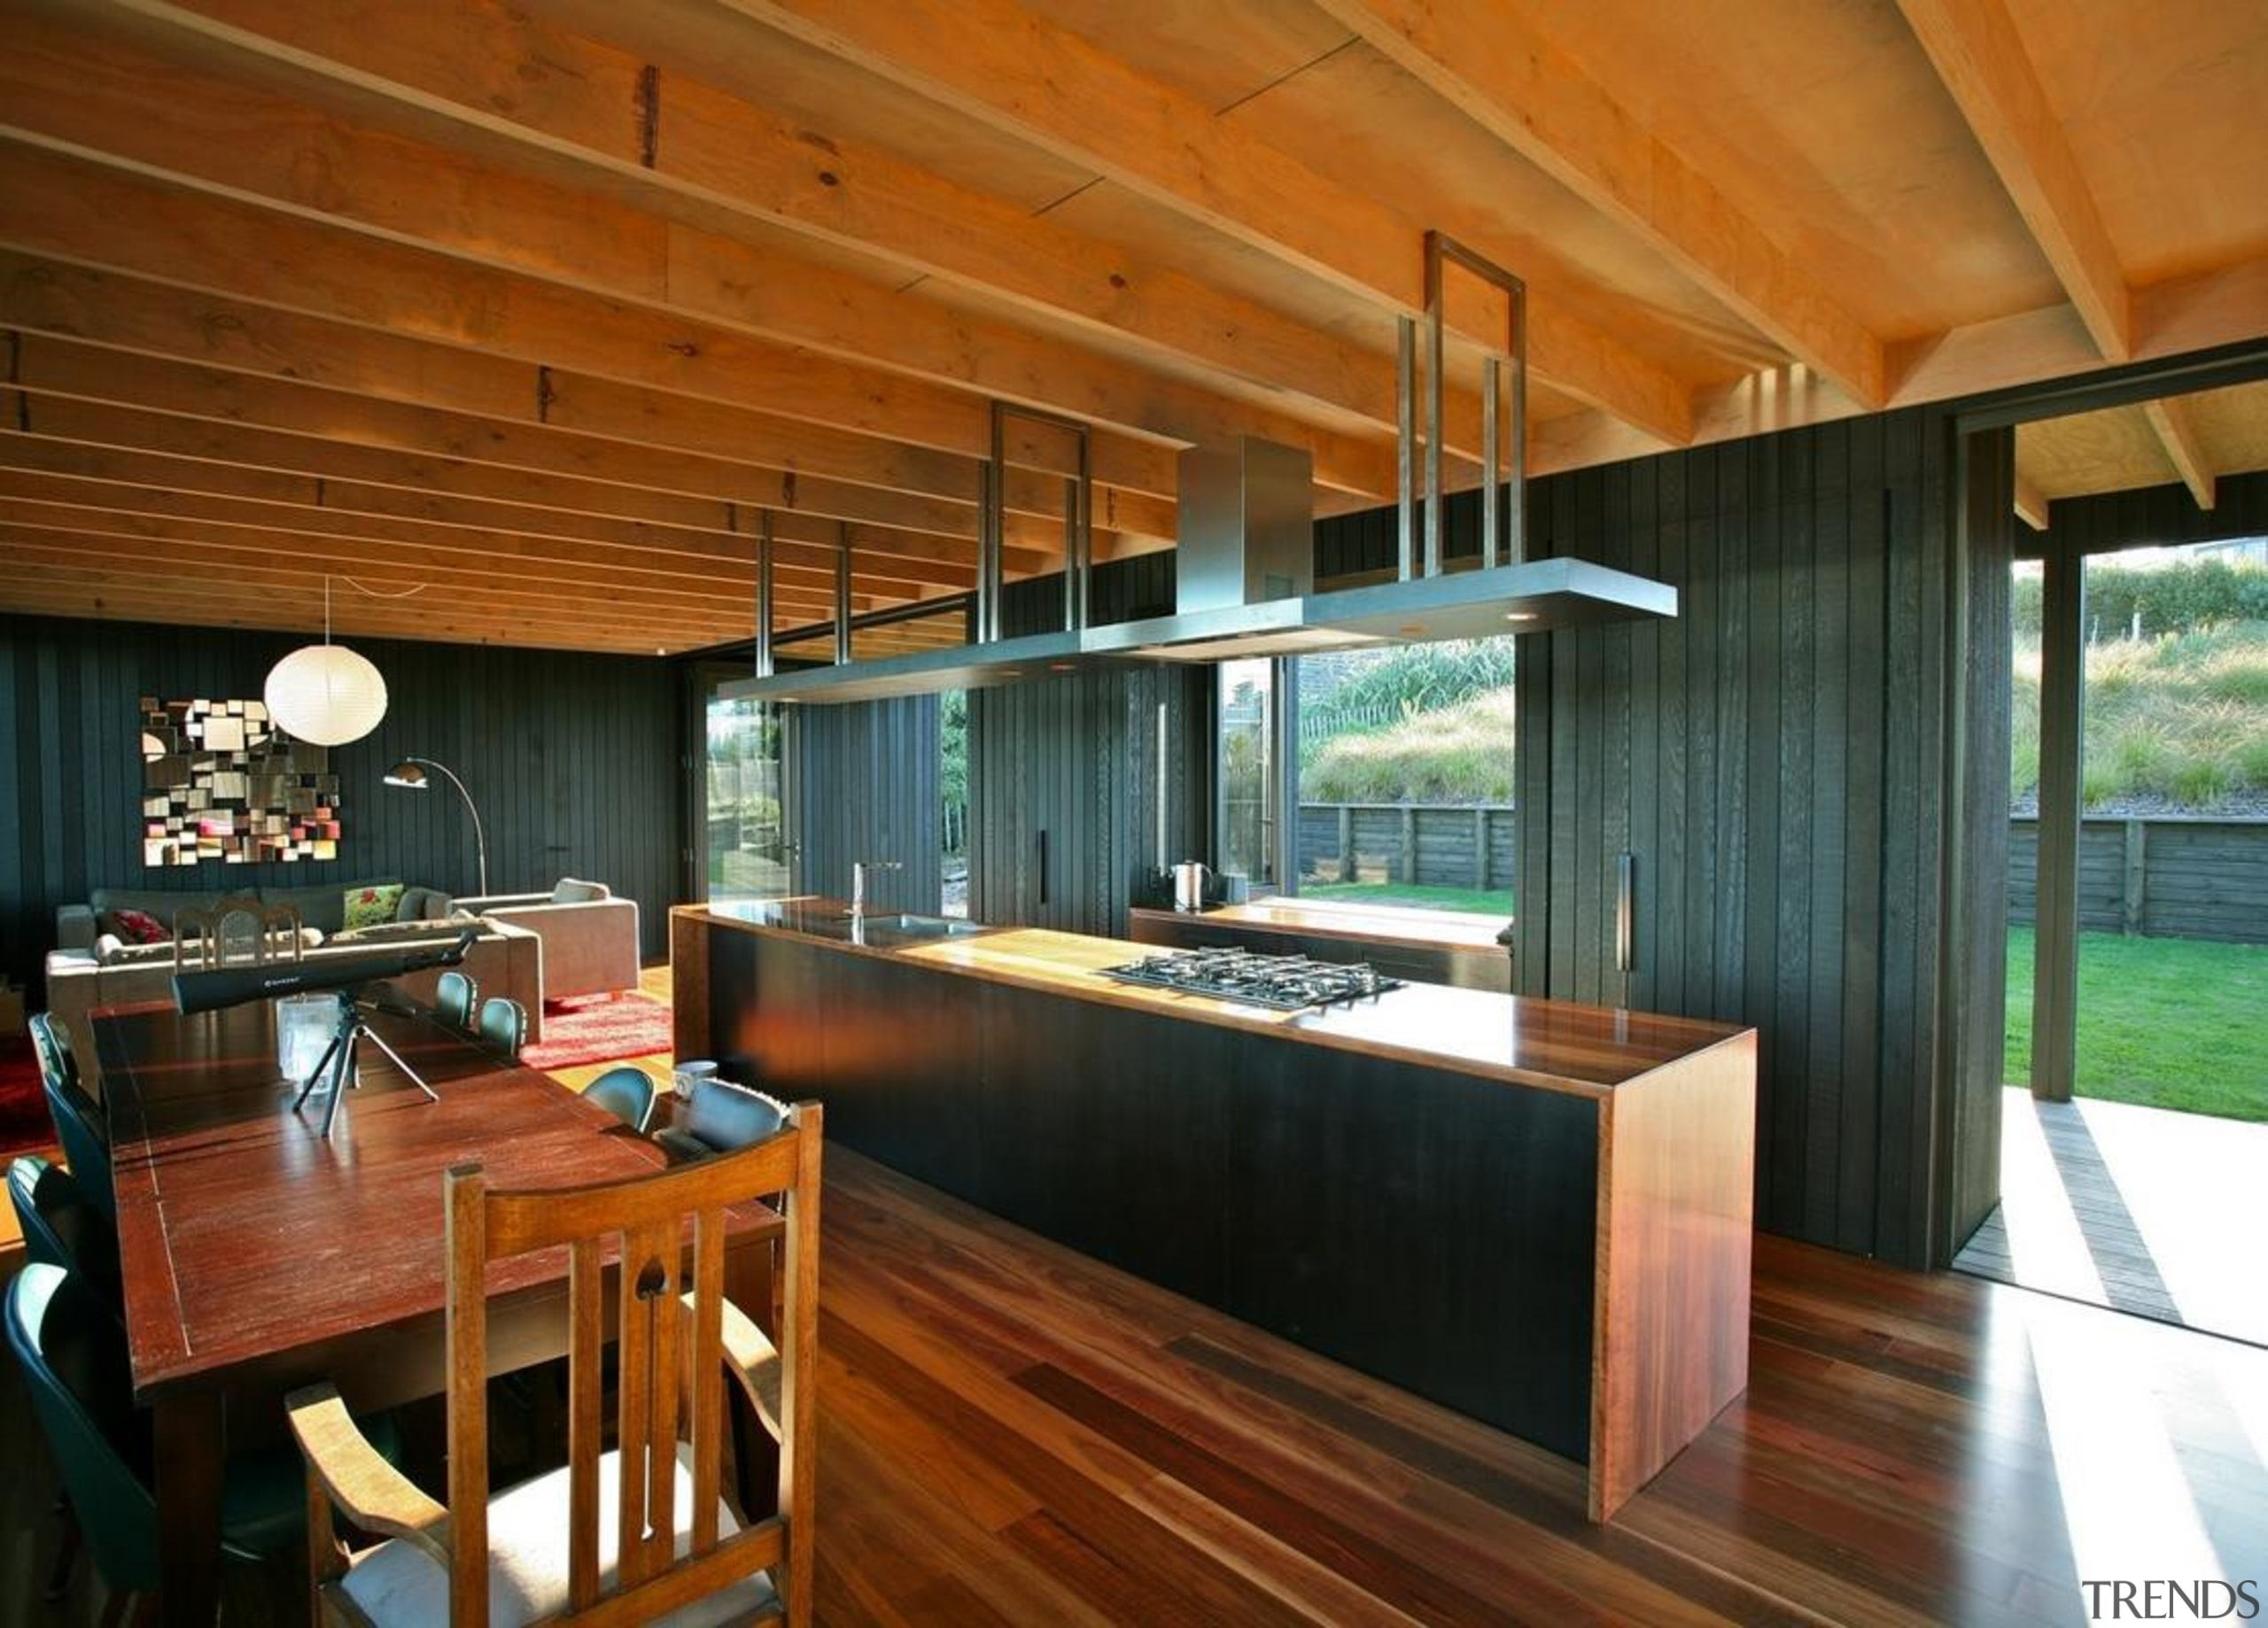 Leigh Bach - architecture   house   interior architecture, house, interior design, real estate, wood, brown